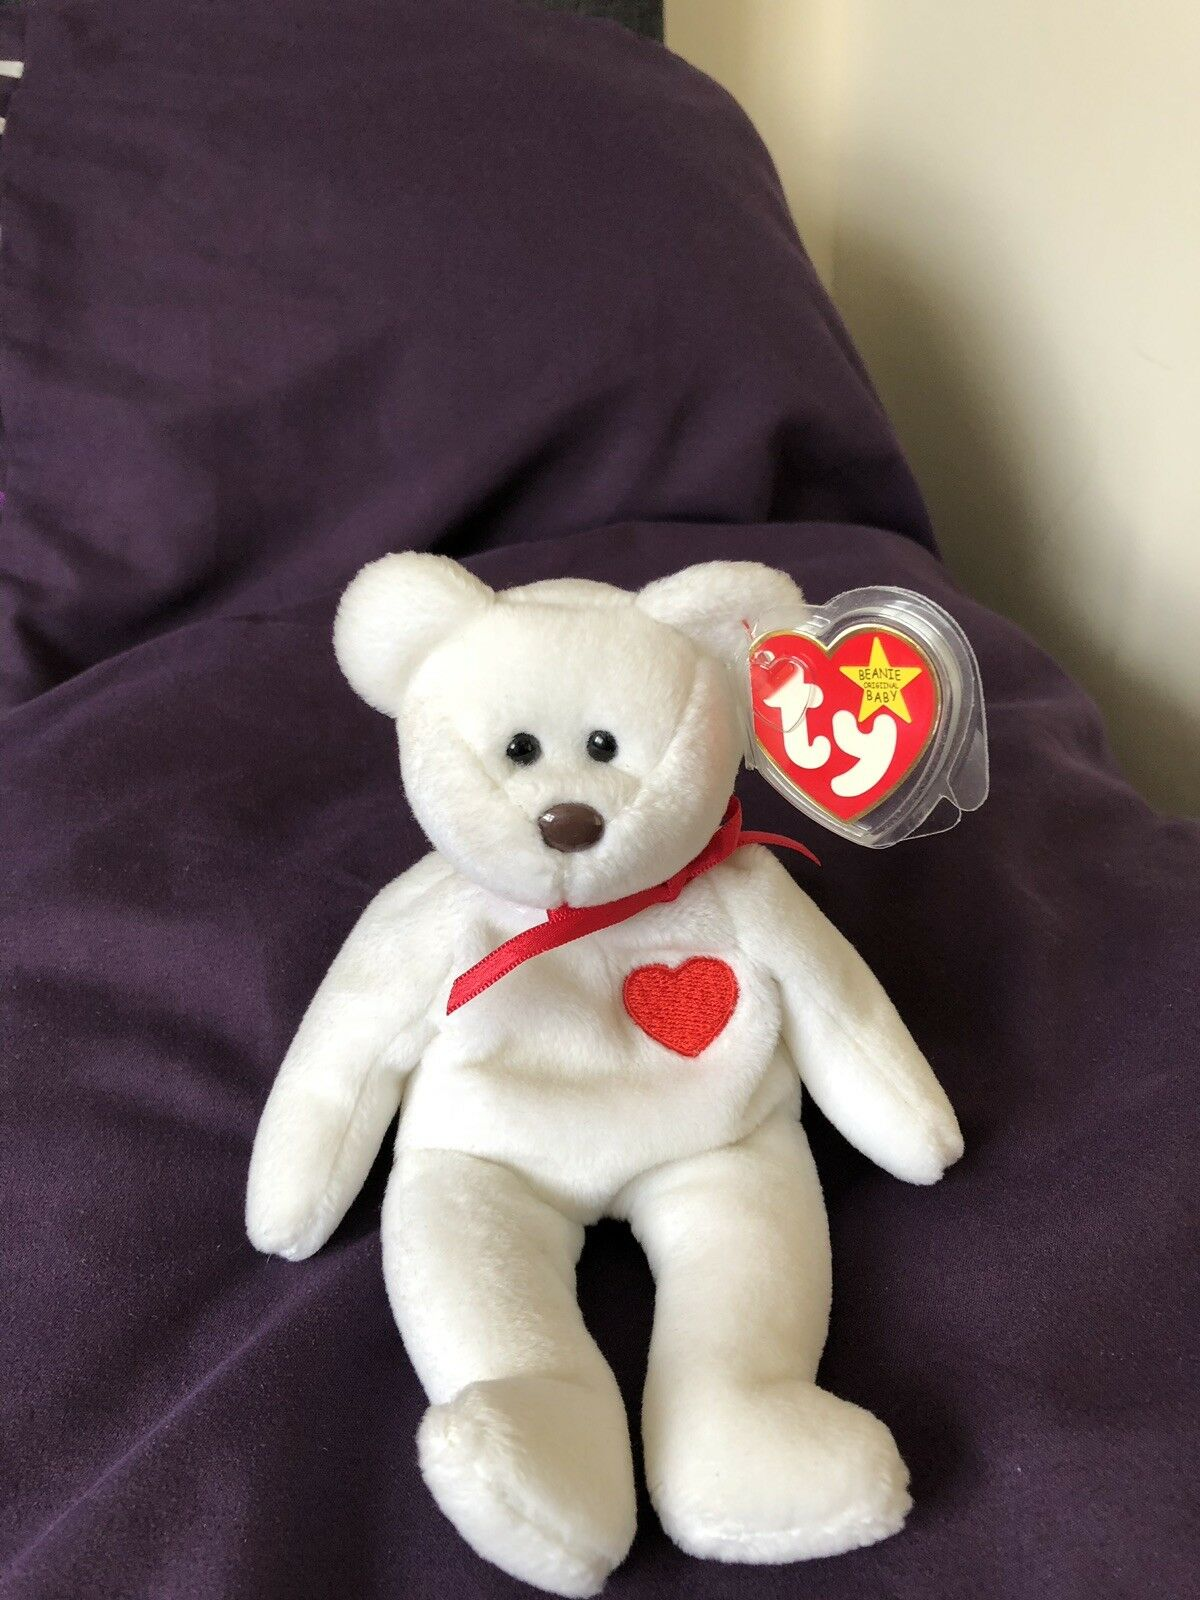 TY Valentino Beanie Baby 1993 with Errors very rare